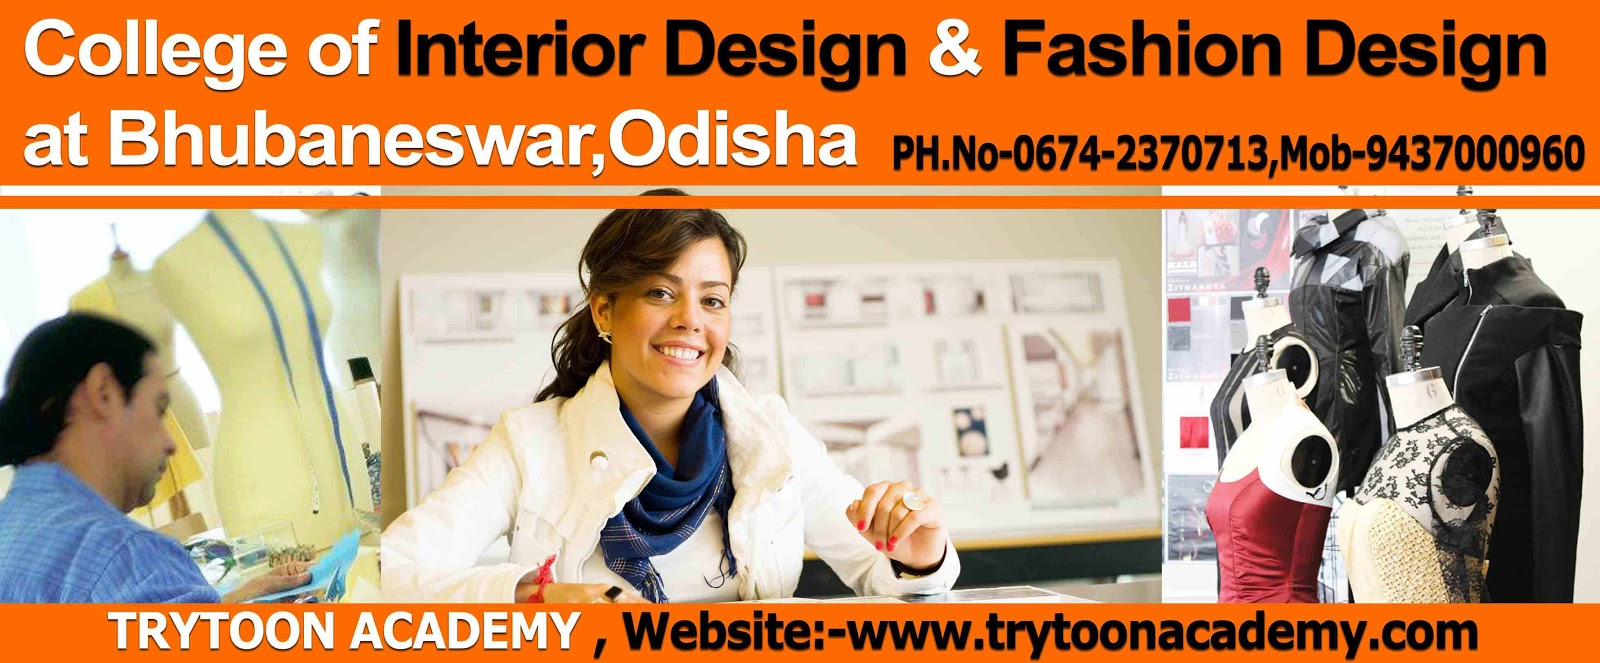 Best Institute Of Fashion Design And Interior Design Best Institute Of Fashion Design Interior Design And Animation Multimedia Course In Bhubaneswar Odisha